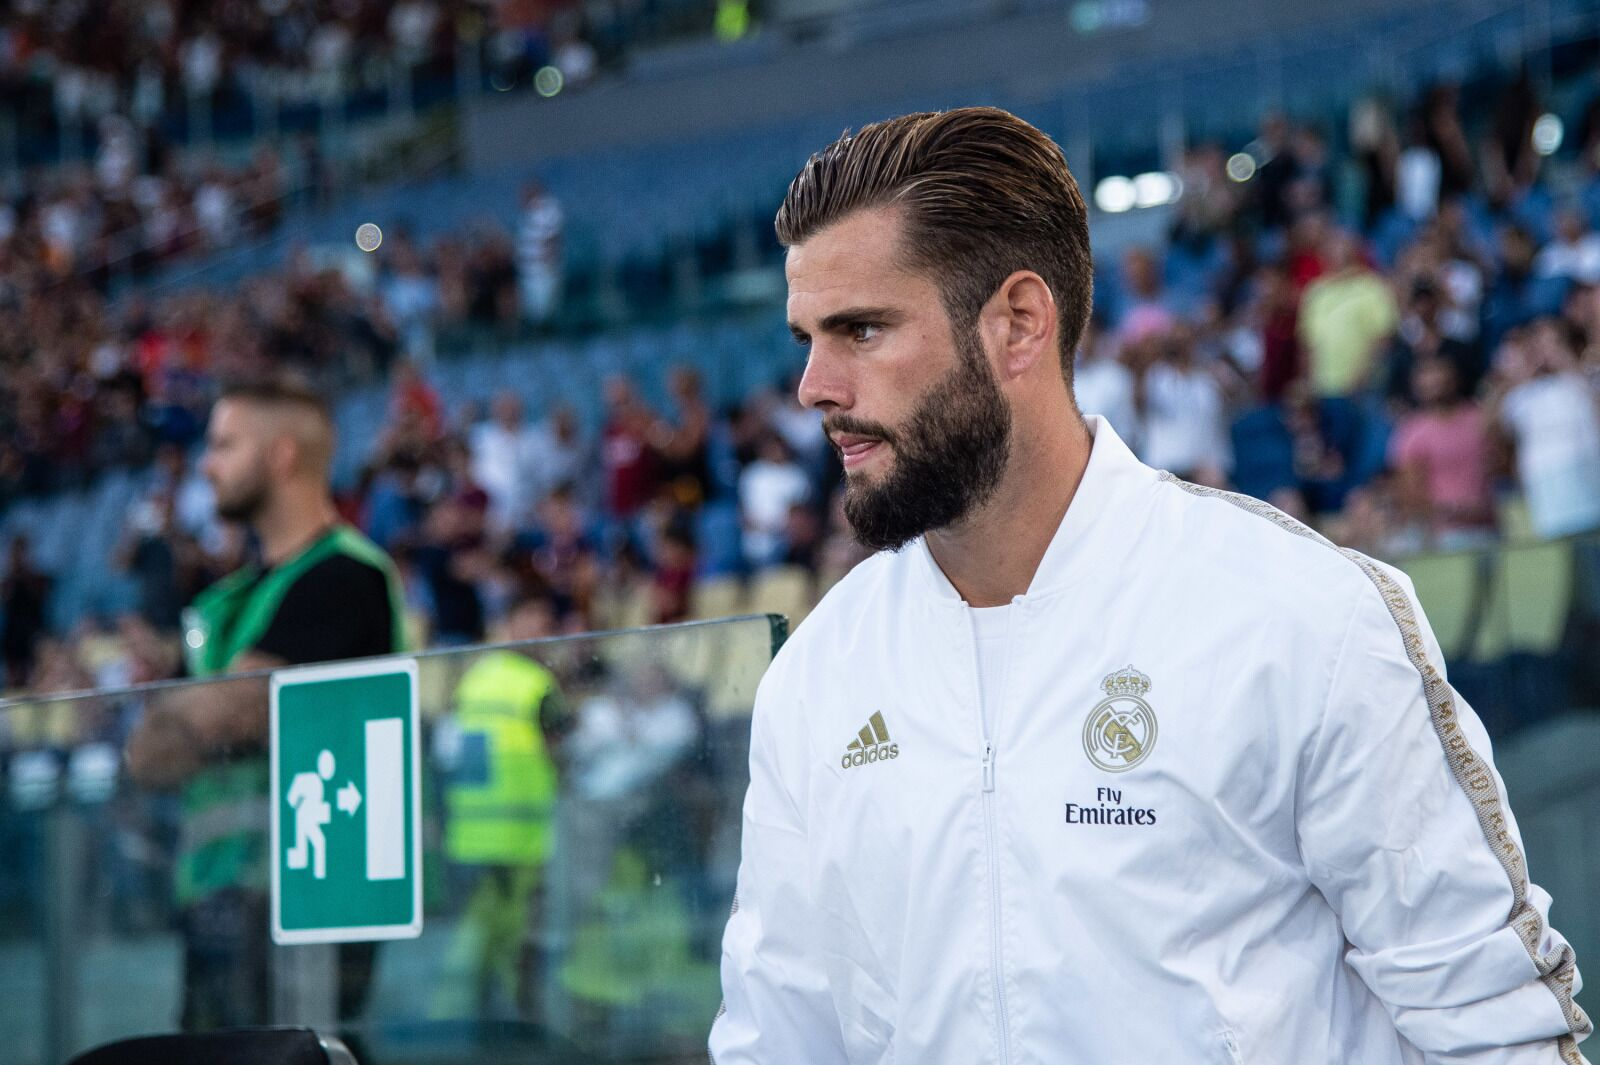 Real Madrid: Should Nacho have left for Sevilla?